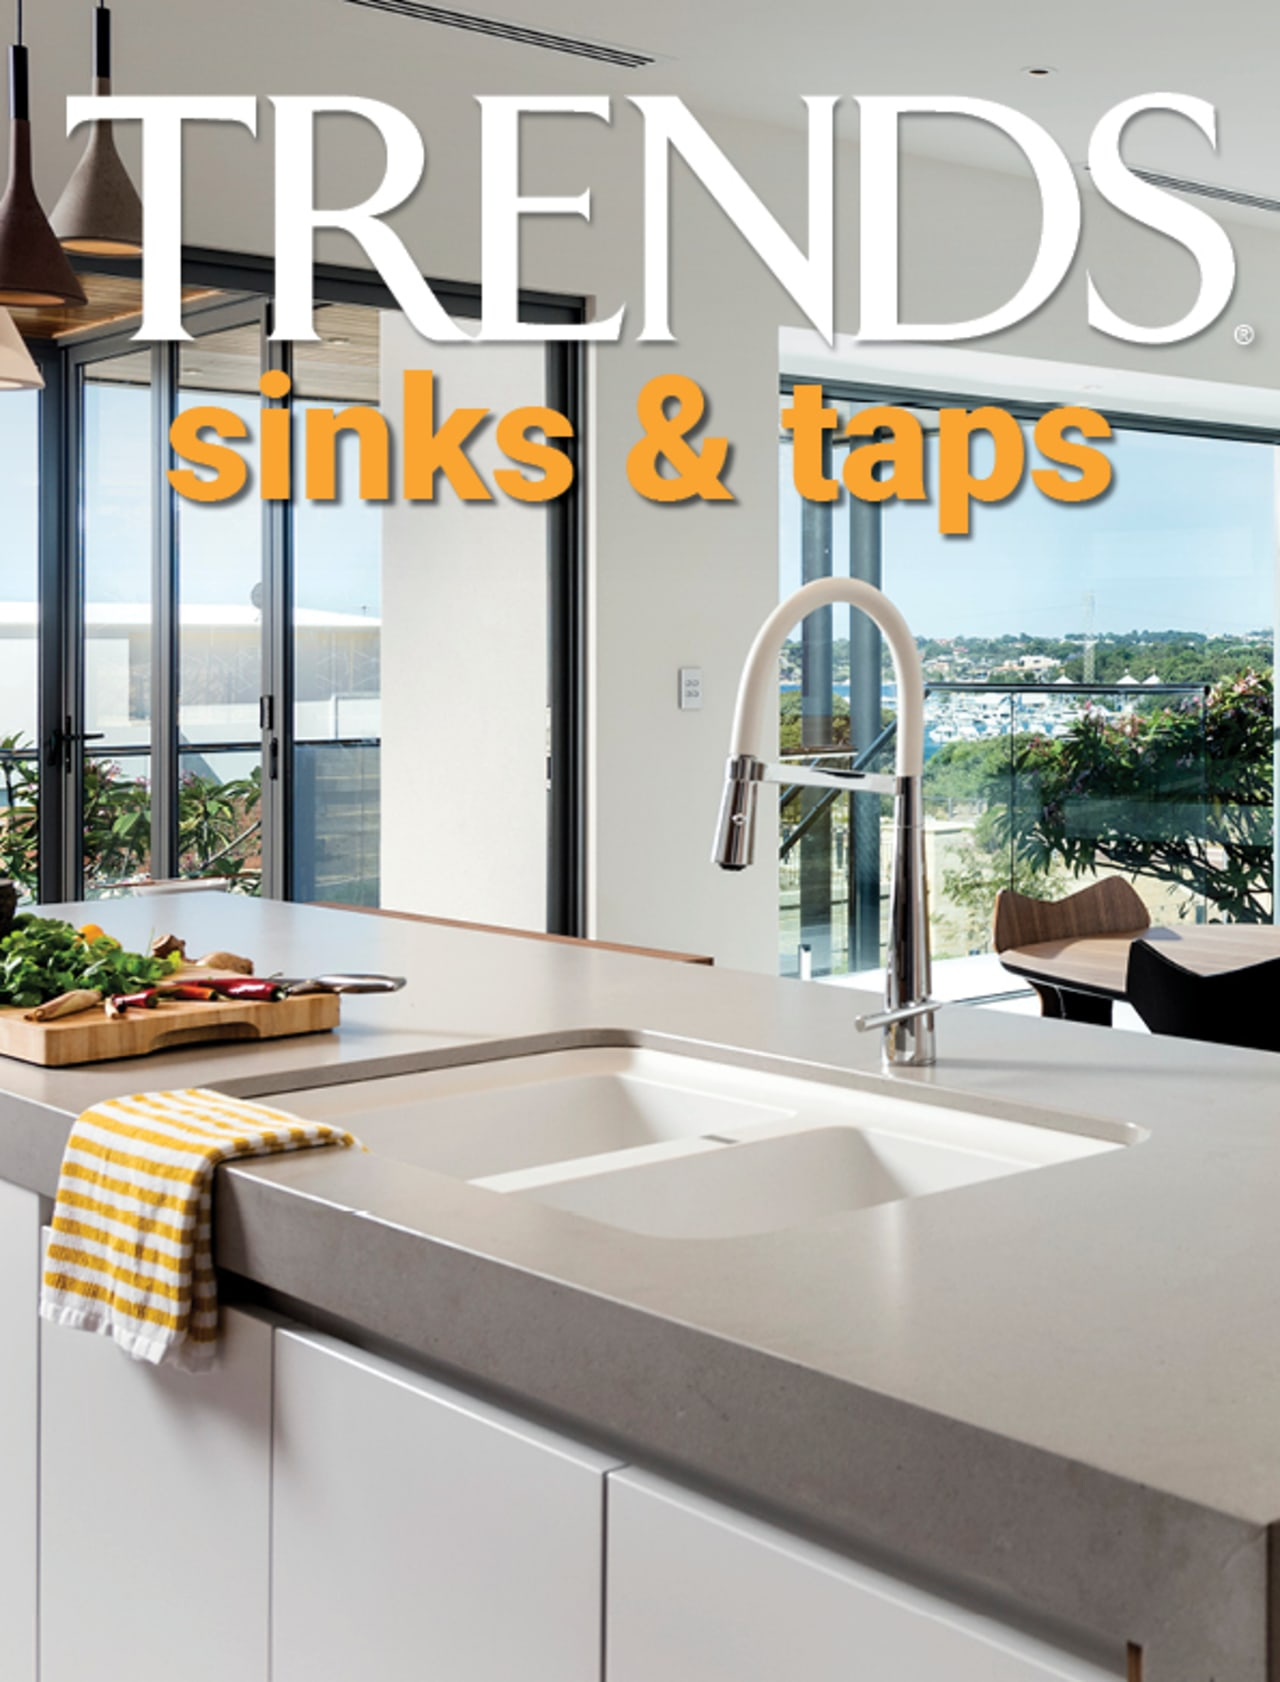 TRENDS MINI COVER 20 sinks taps - building building, cabinetry, ceiling, countertop, floor, flooring, furniture, glass, home, house, interior design, kitchen, material property, property, real estate, room, table, tile, window, gray, white